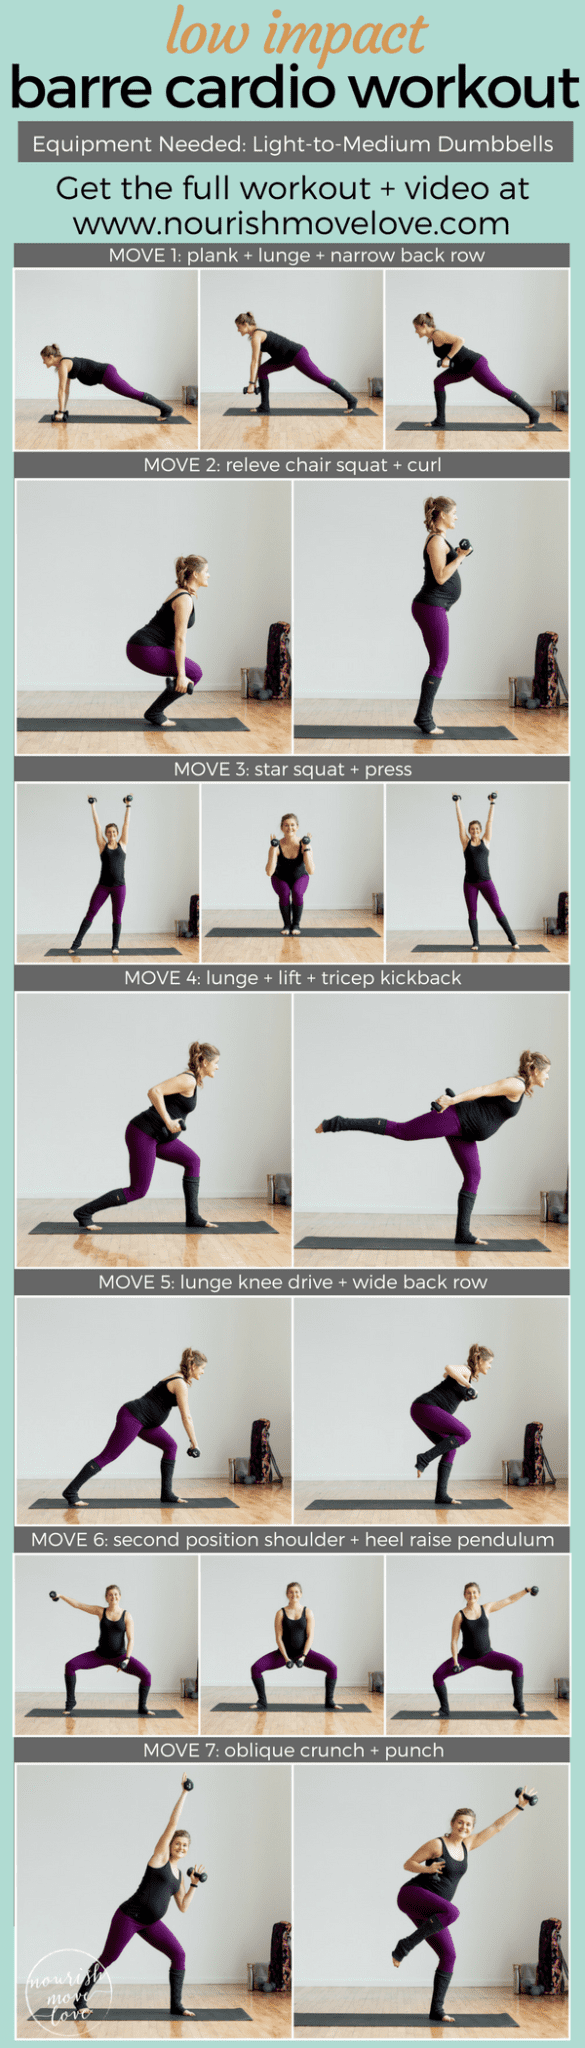 Low Impact Barre Cardio Workout